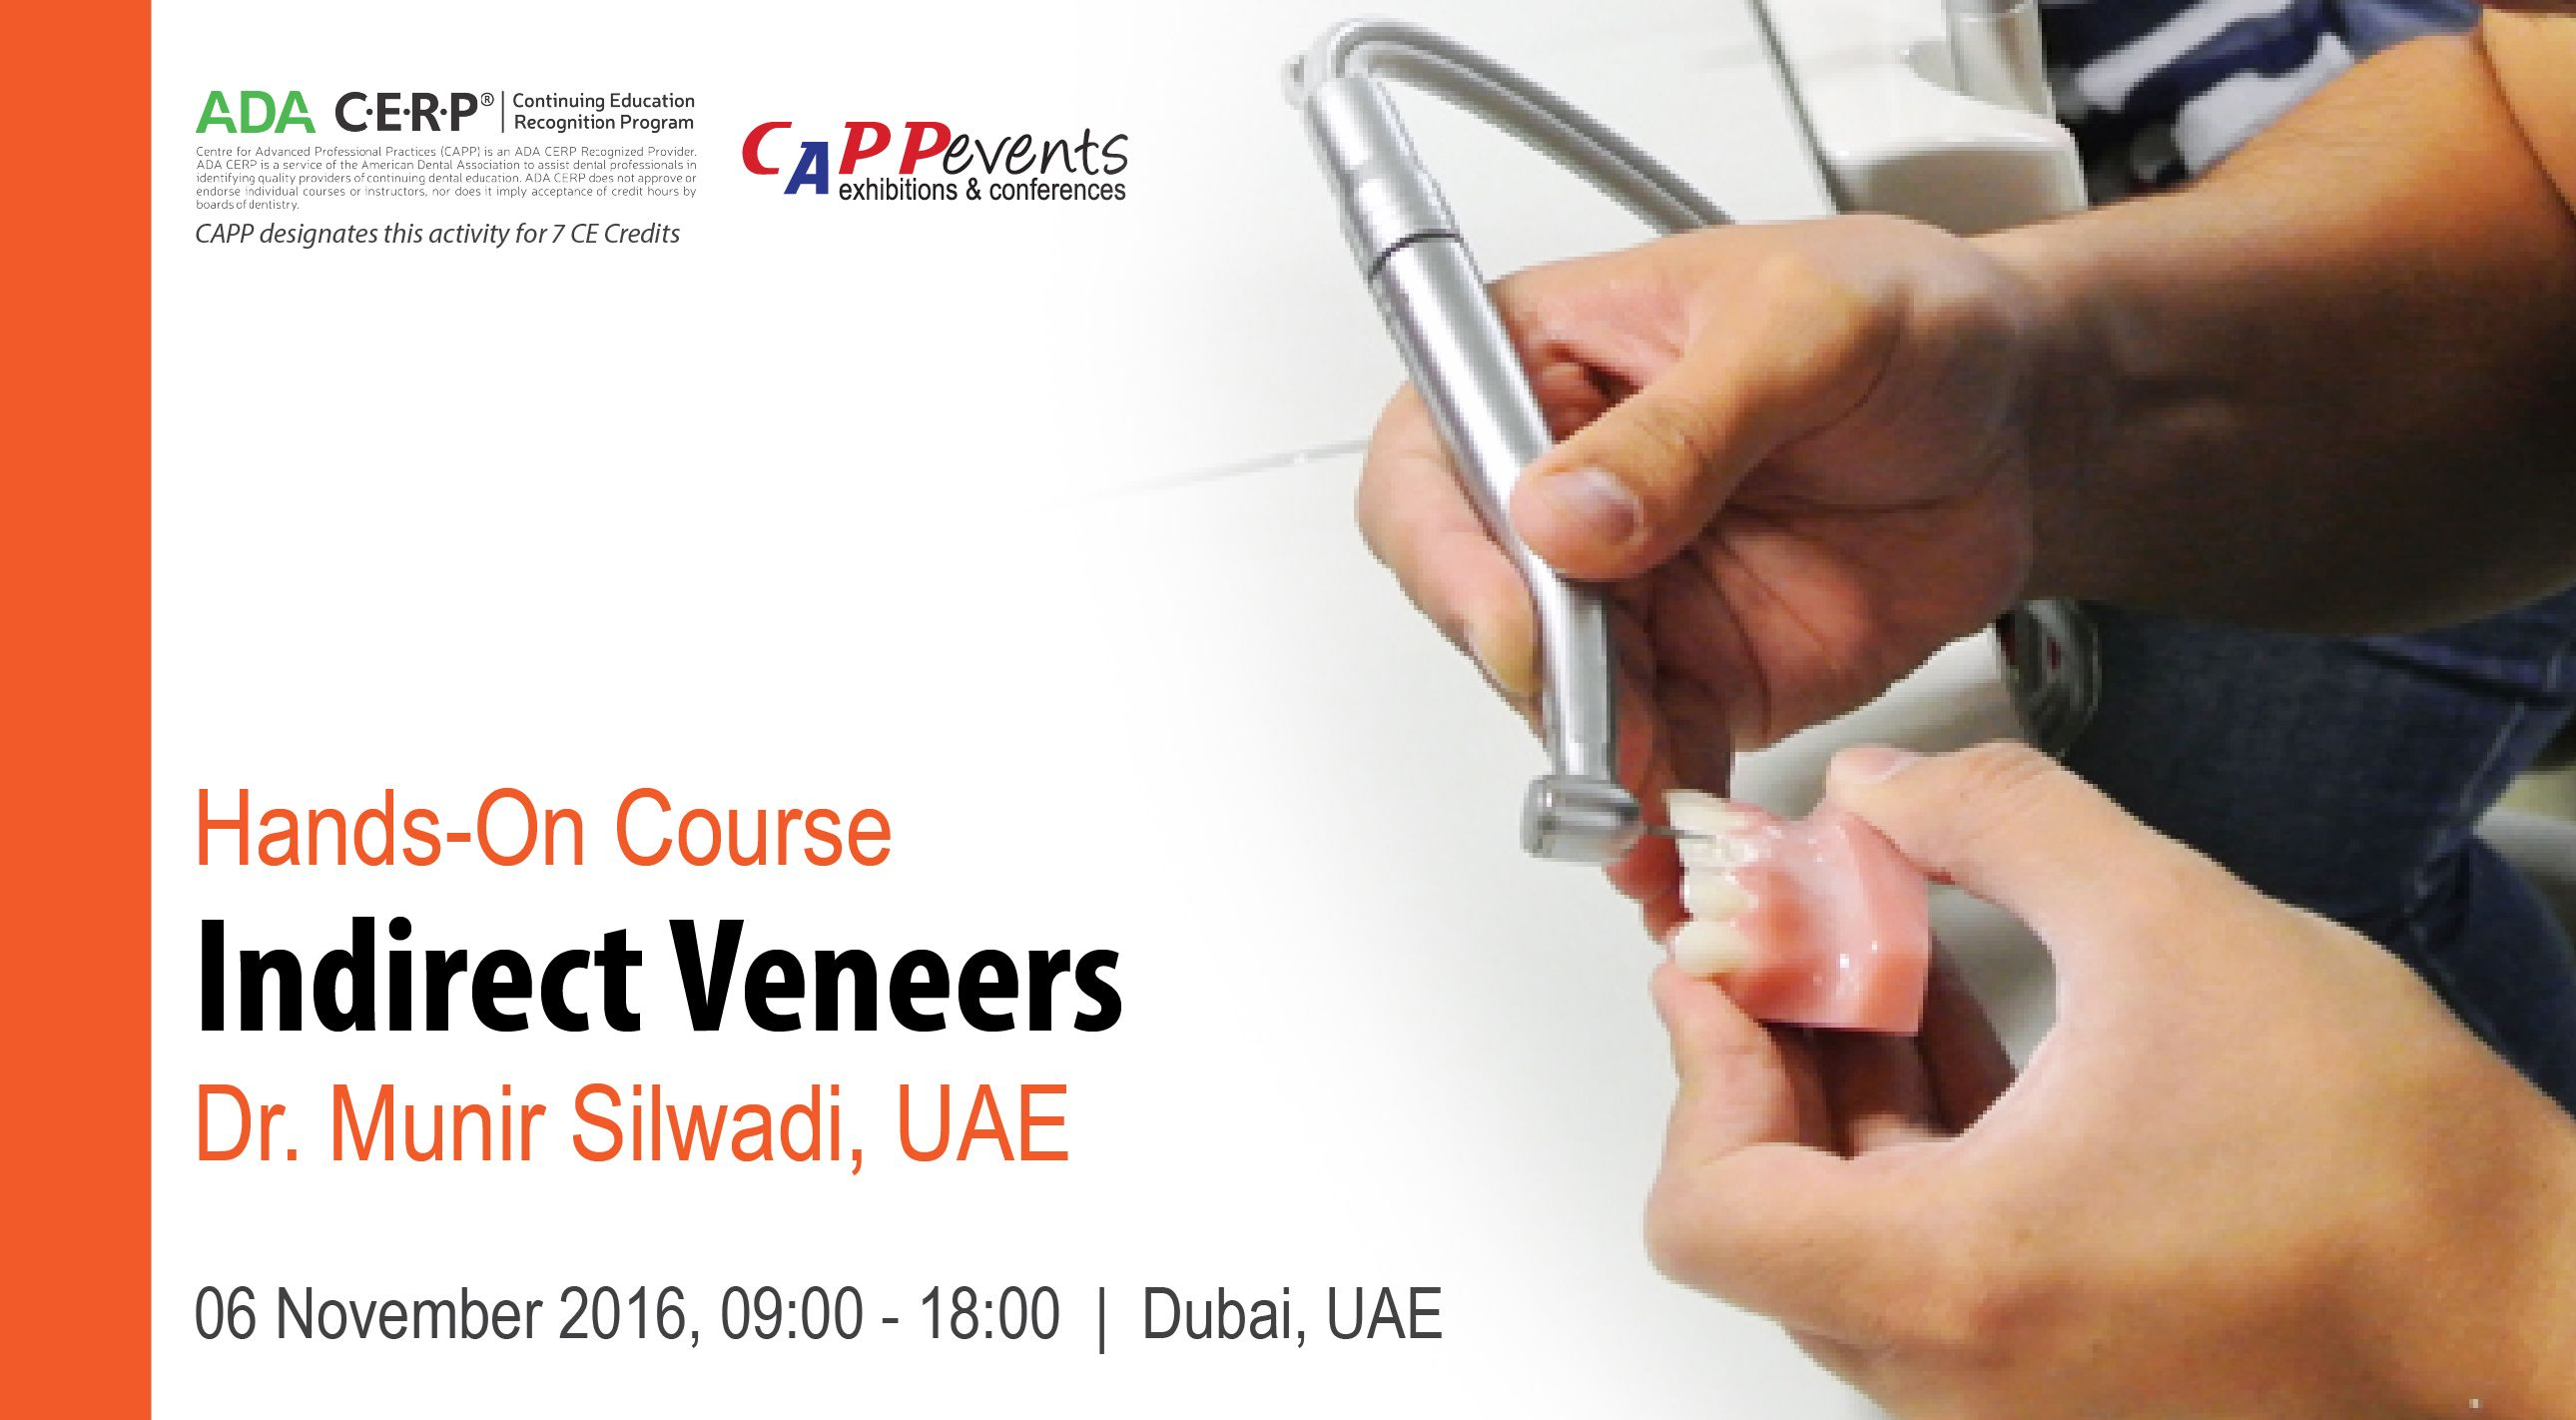 Ceramic Veneers Present One Of The Most Conservative Aesthetic Treatment Modalities Join Dr Munir Silwadi At His Hands On Course Dentistry Veneers Hygienist